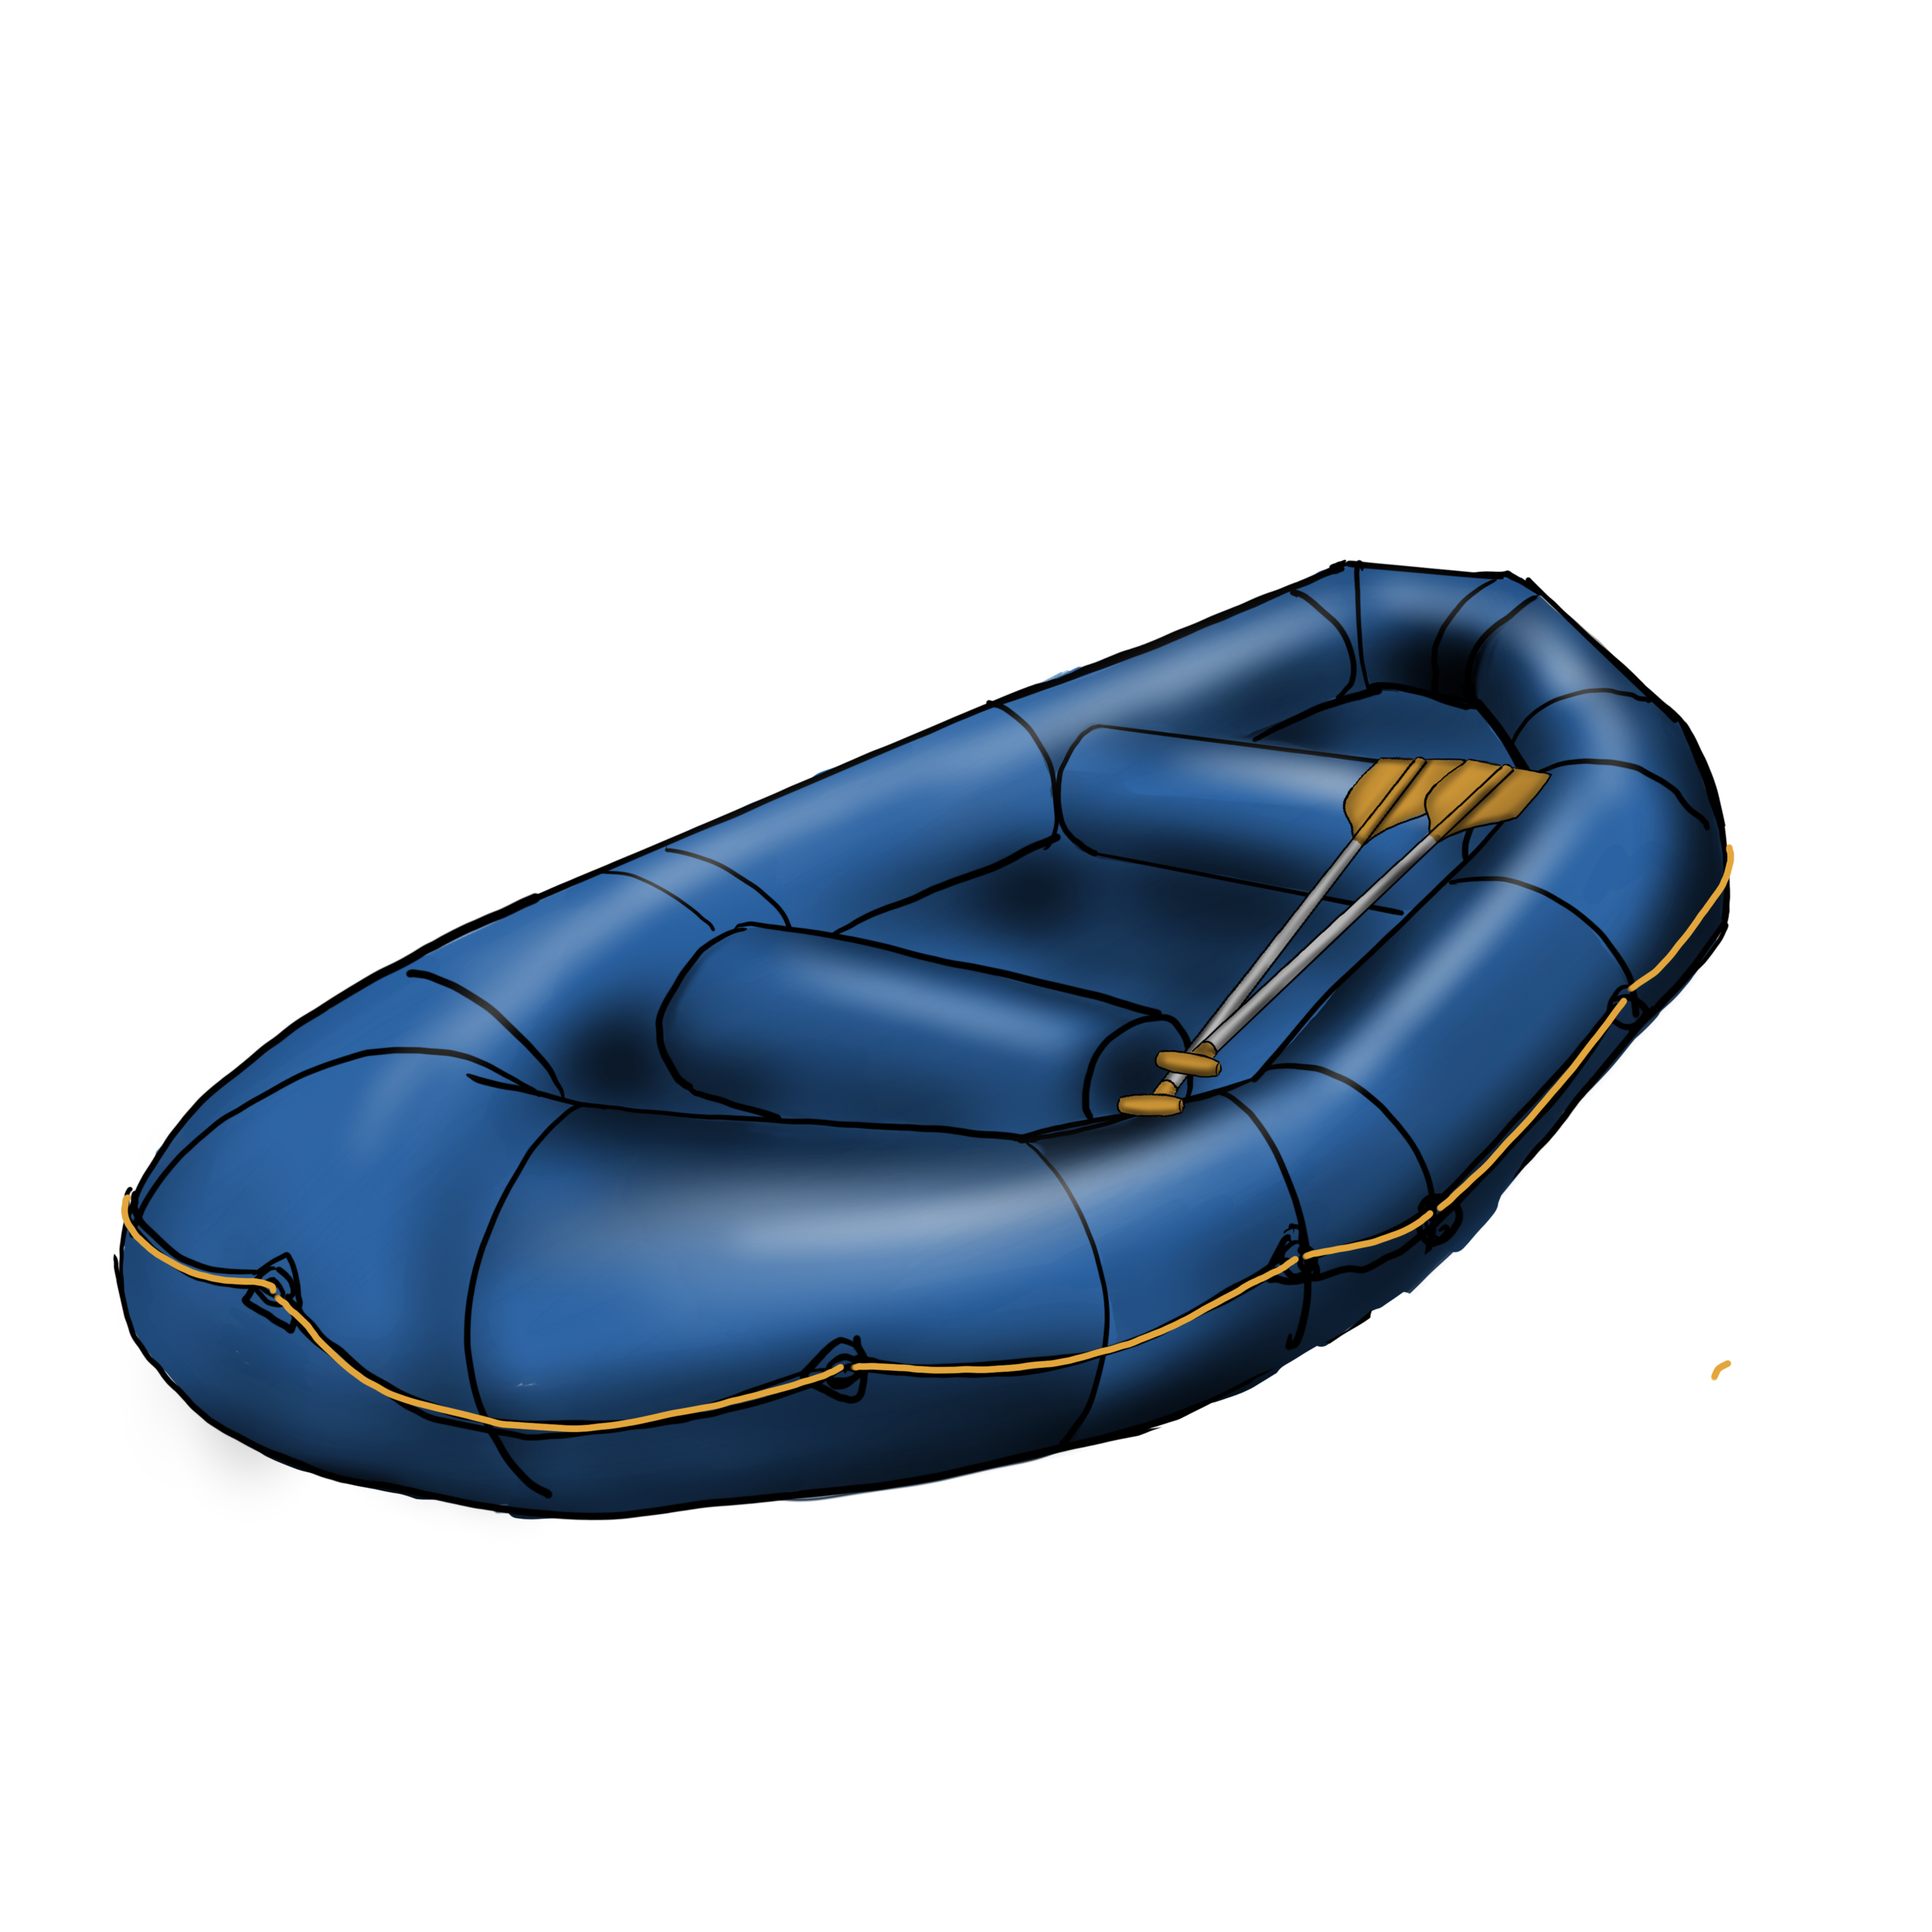 1cpm_077-raft.png